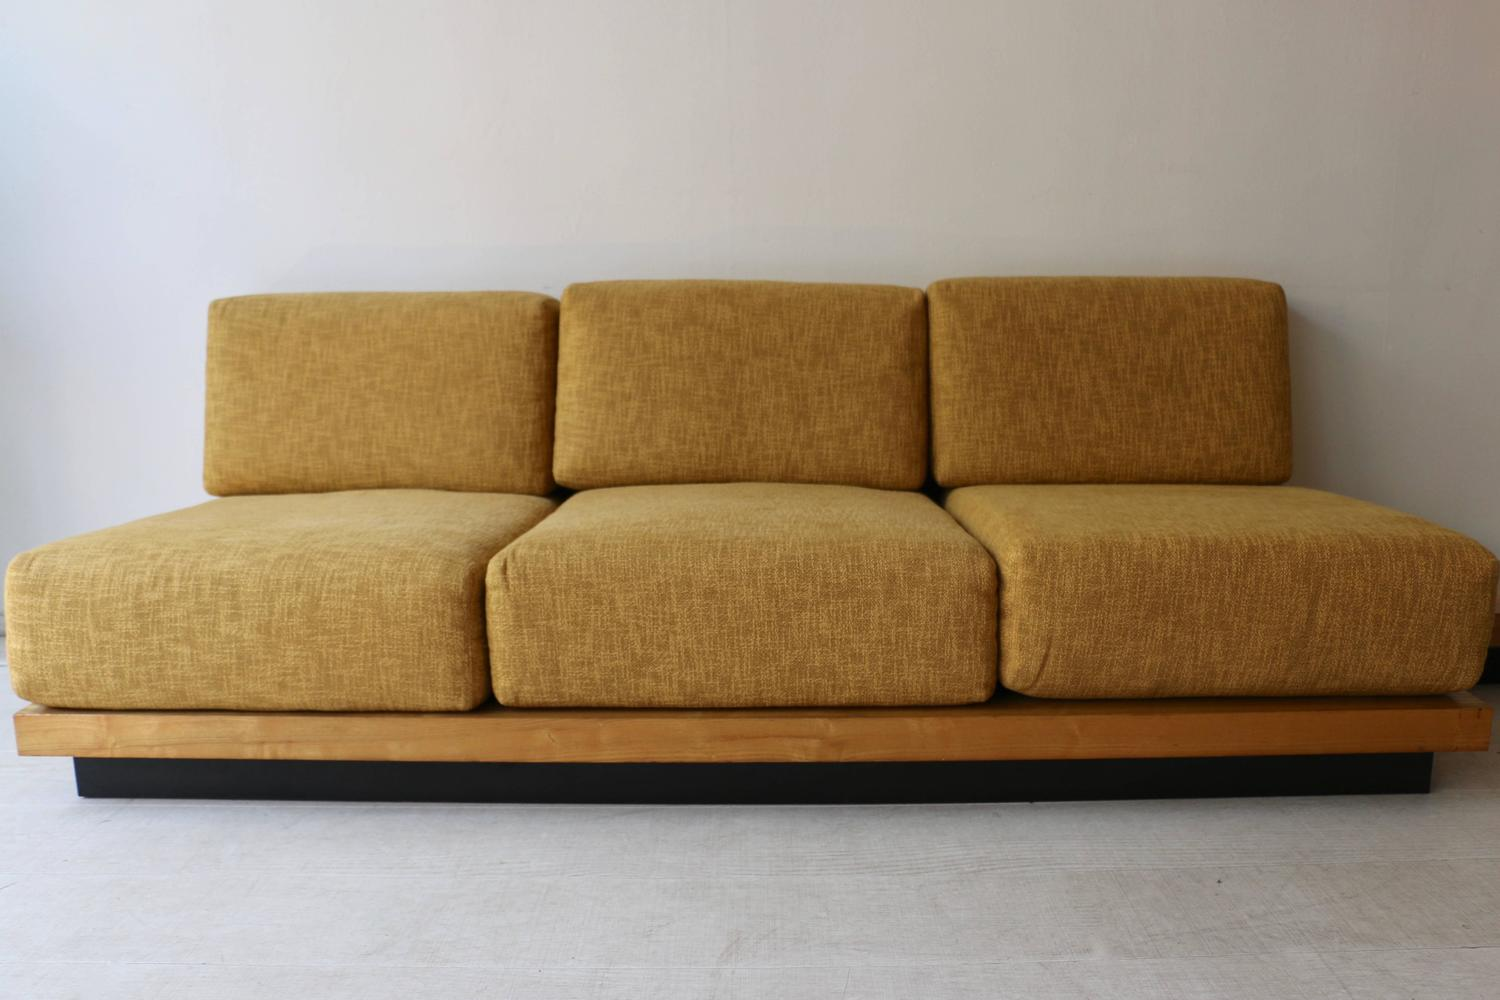 Three Seat Sofa In Wood And Yellow Fabric By Gustave